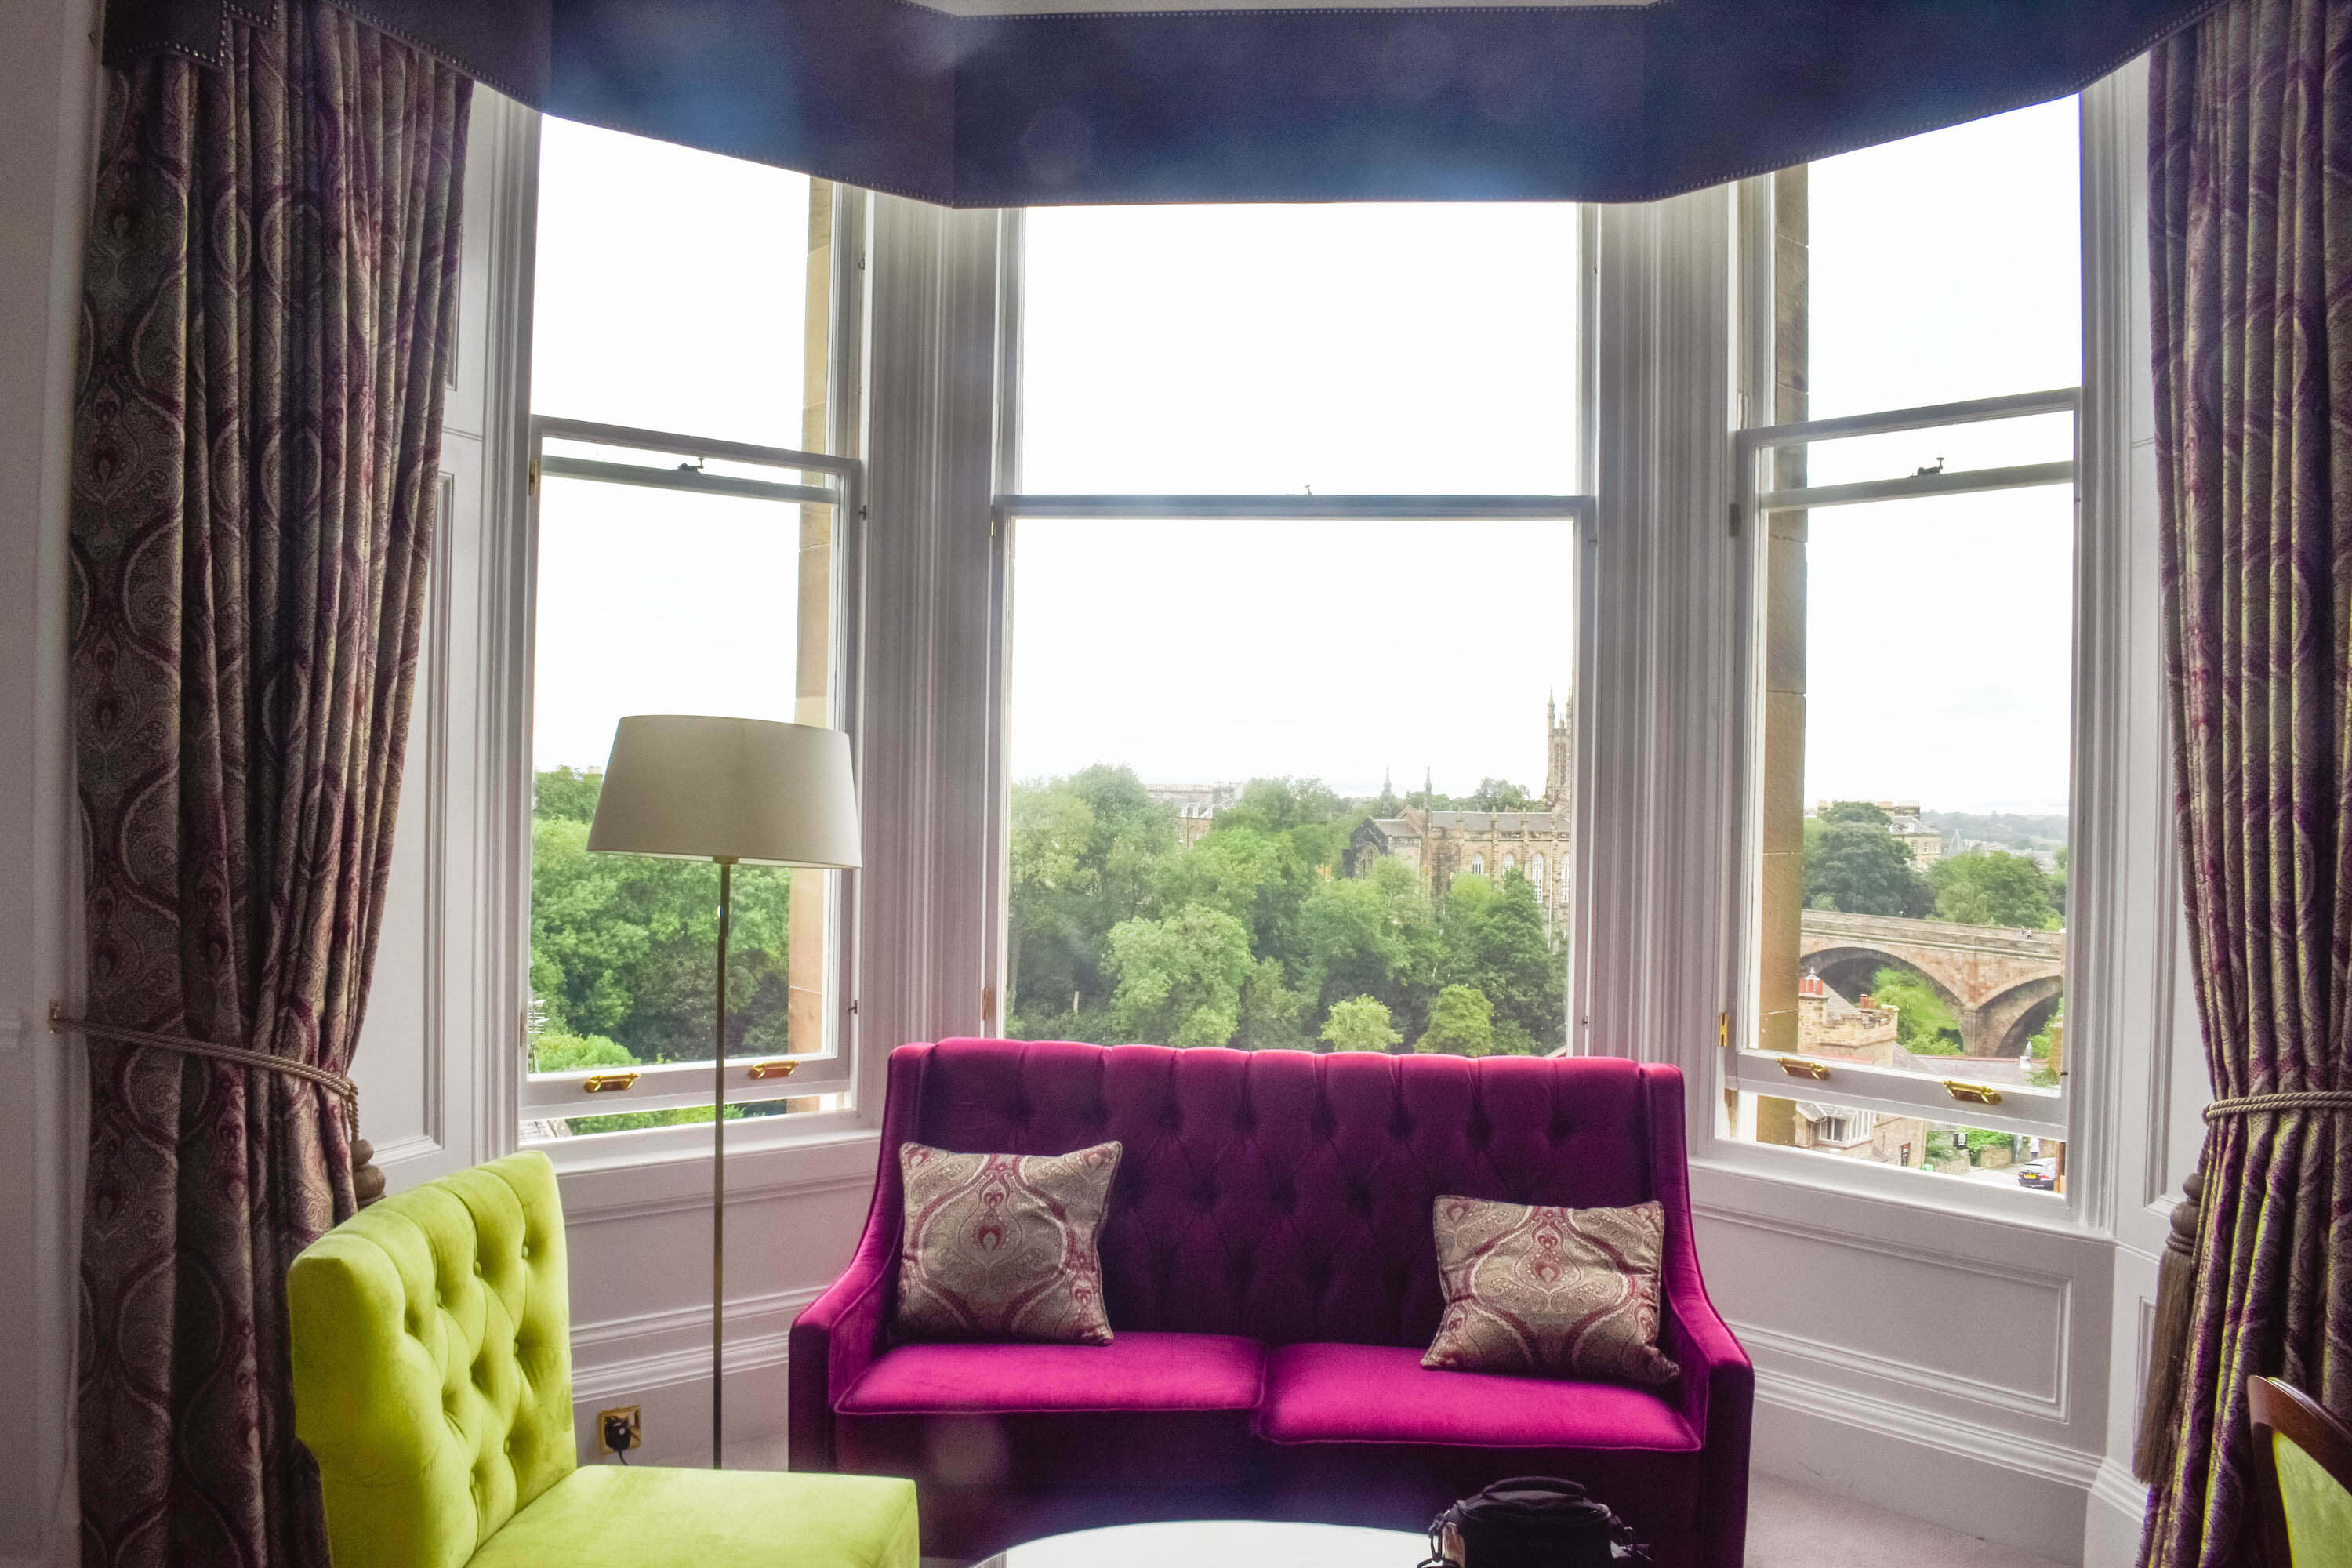 The Bonham Hotel Review - The Window View